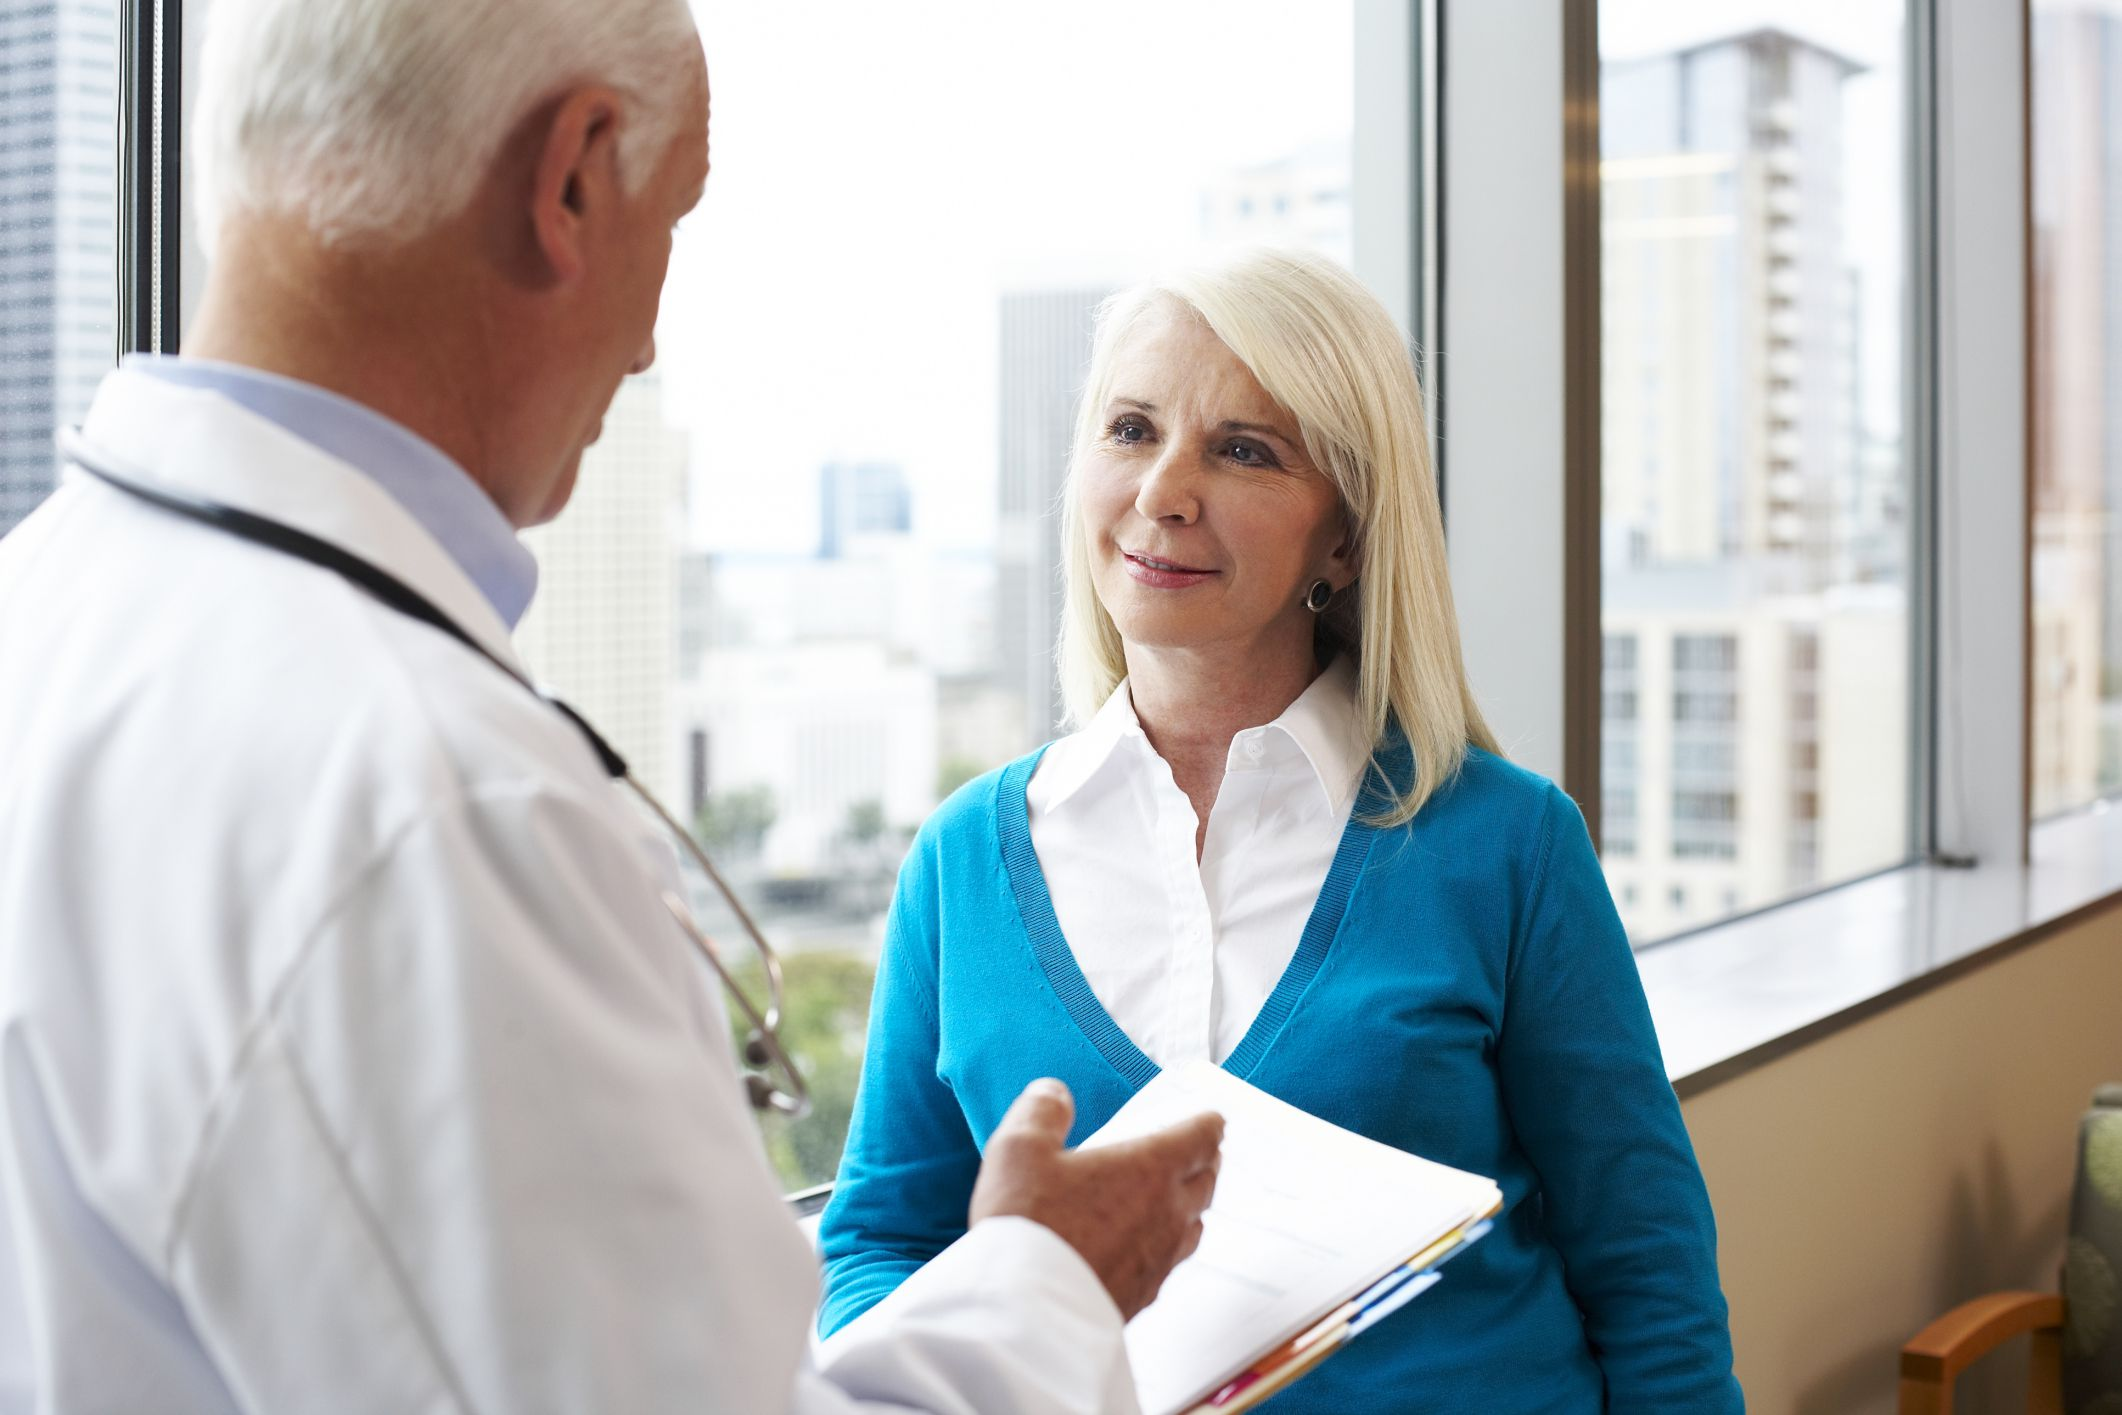 How to Talk to Your Doctor About Menopause